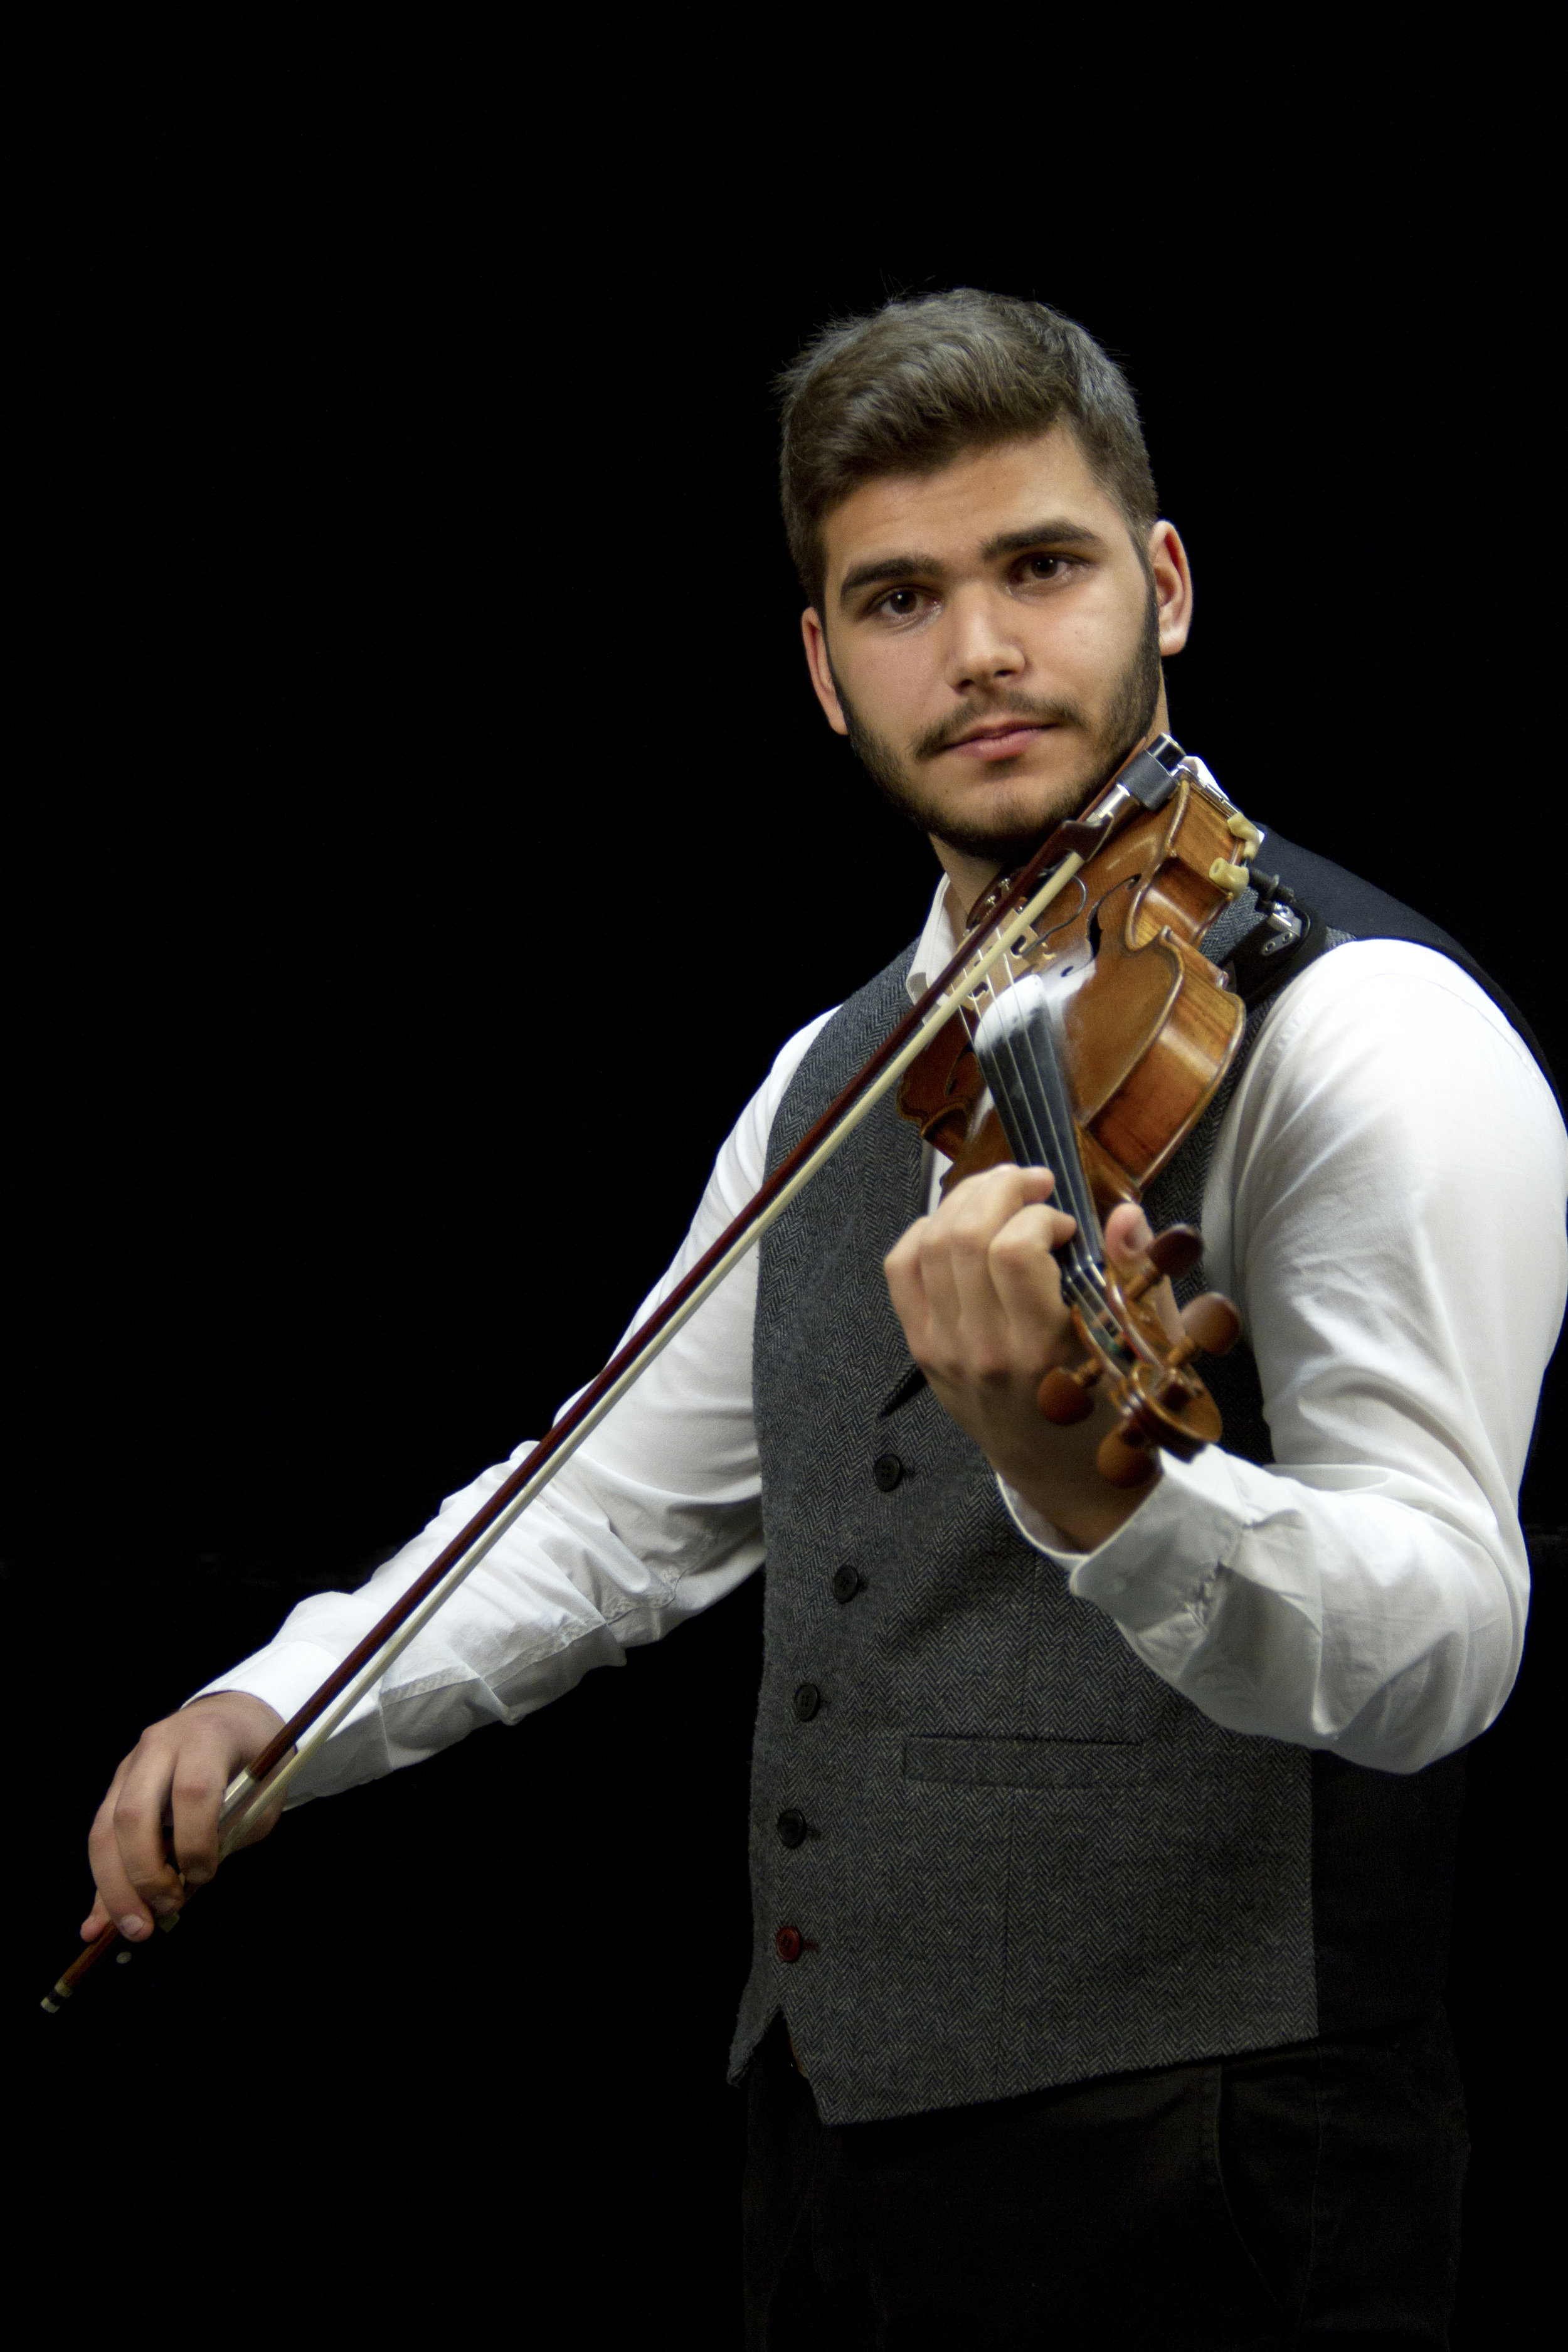 Harry Lygkos - Harry Lygkos was born in 1998 in Athens, where he grew up. From the age of 12 he begins his studies at the Music School of Ilion where he received the first knowledge in the traditional violin. A stimulus for his work with the music and instrument, his experiences at the traditional festivals of Ikaria, a place where he spends his summers from an early age. He has studied with Kyriakos Gouvendas, Nikos Fakaros, Andreas Preka and others, each of which has been the occasion for further deepening of the sounds and the genres of the regions of Greece. He is one of the founding members of the Pentaichon. In the summer of 2016 he finished his studies at the Music School of Ilion and began studying at the Department of International, European and Regional Studies of the Panteion University.